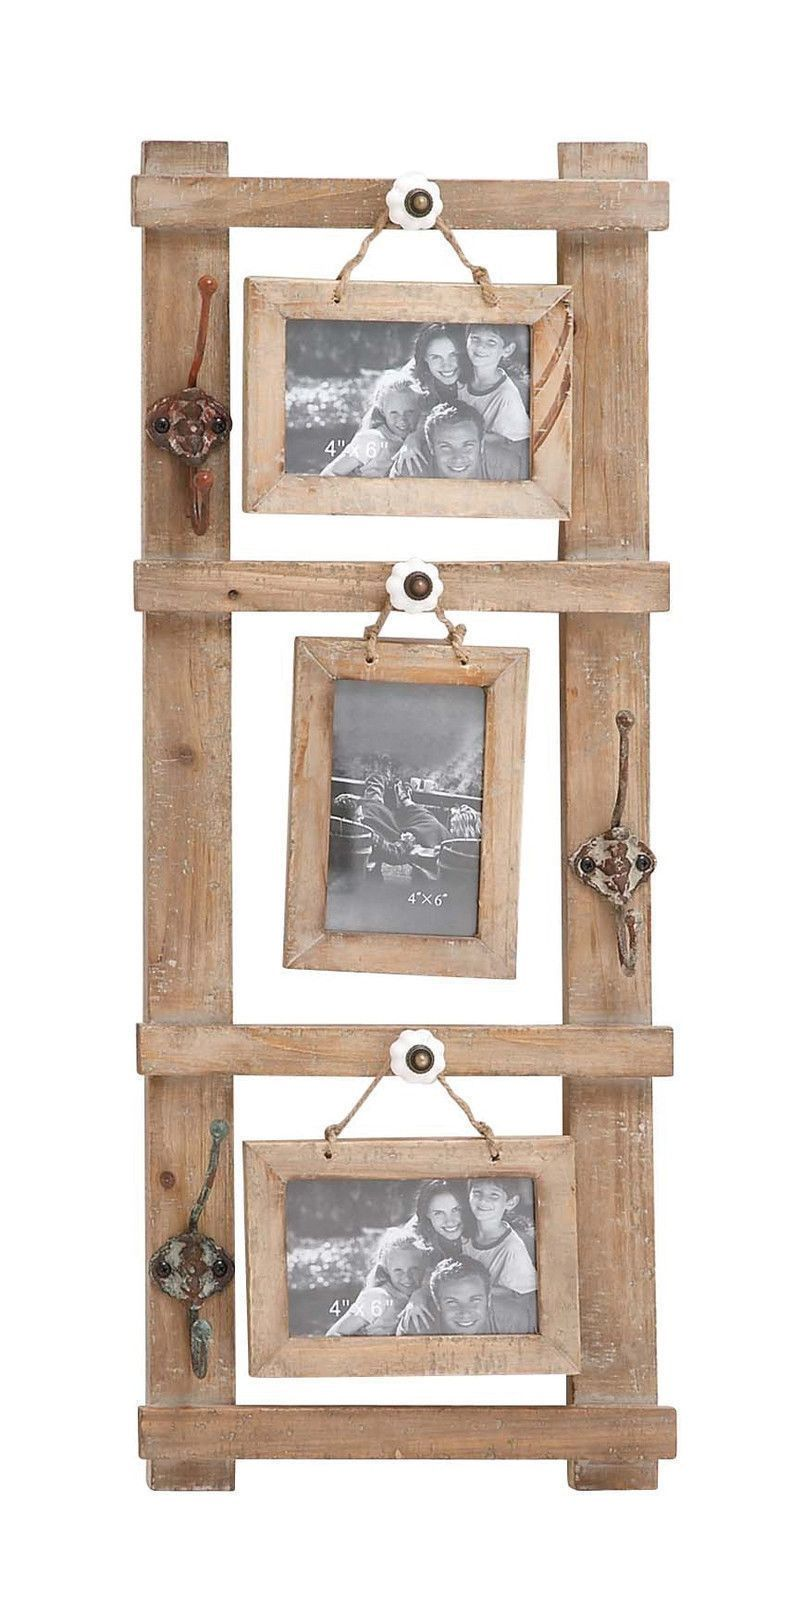 Rustic western wood picture frame 3 hanging 5x7 photos vintage rustic western wood picture frame 3 hanging 5x7 photos vintage look metal hooks jeuxipadfo Gallery